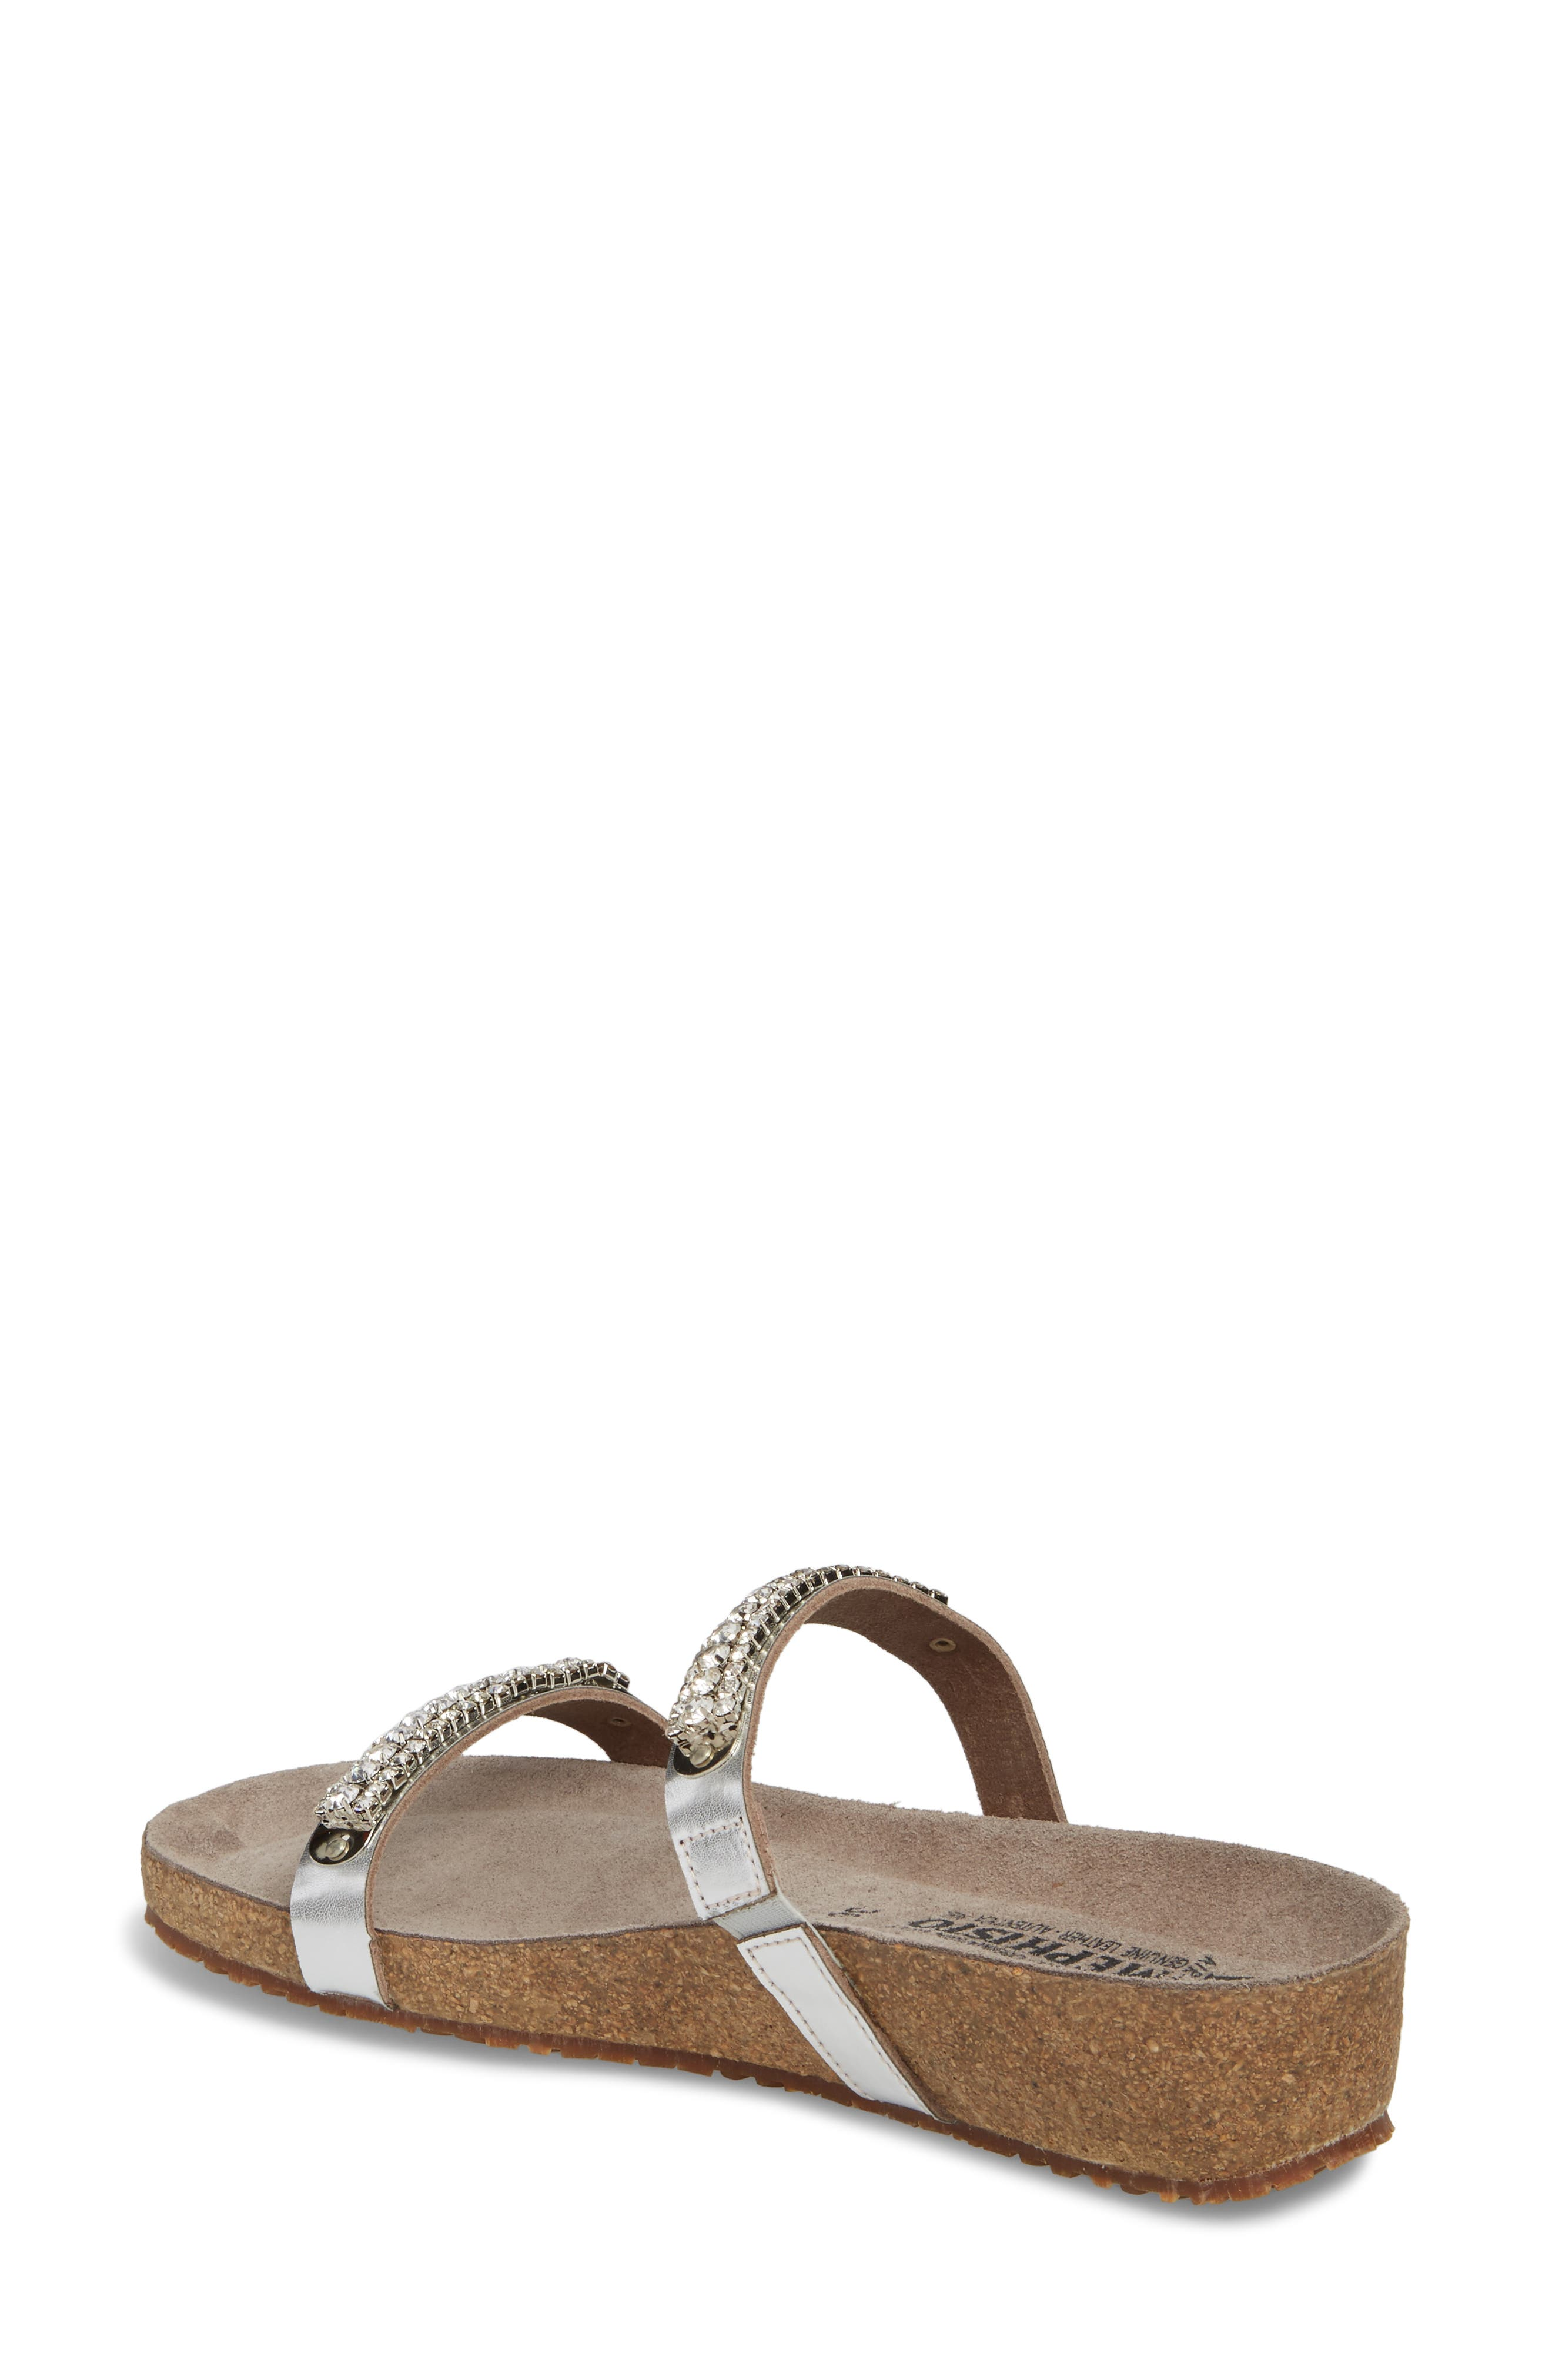 'Ivana' Crystal Embellished Slide Sandal,                             Alternate thumbnail 2, color,                             082